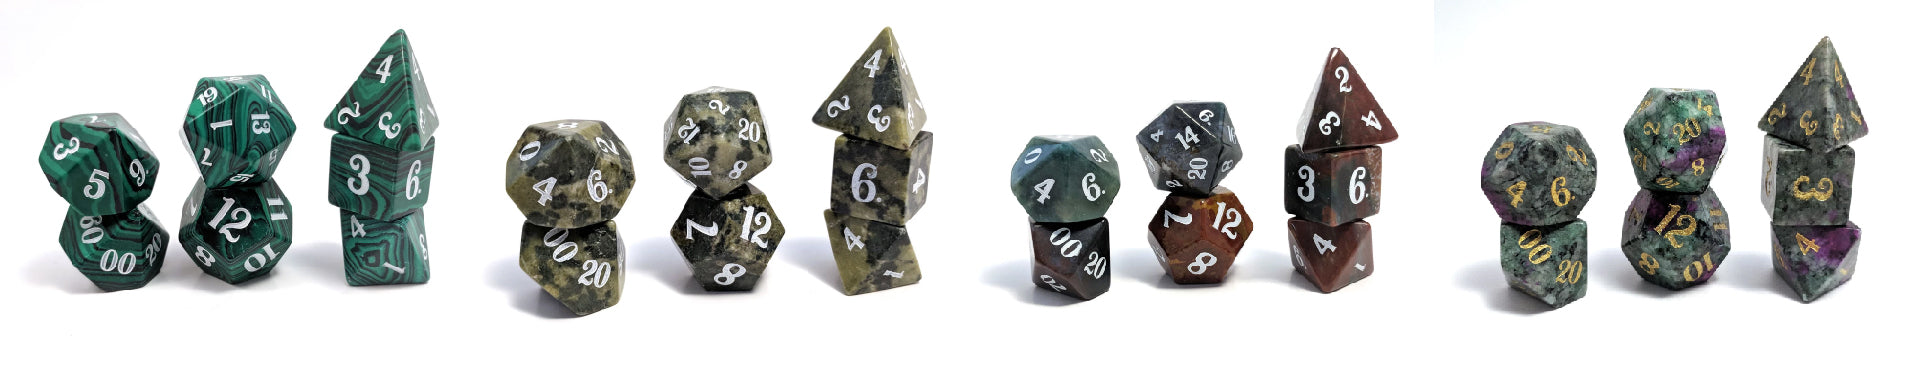 Green druid dice sets